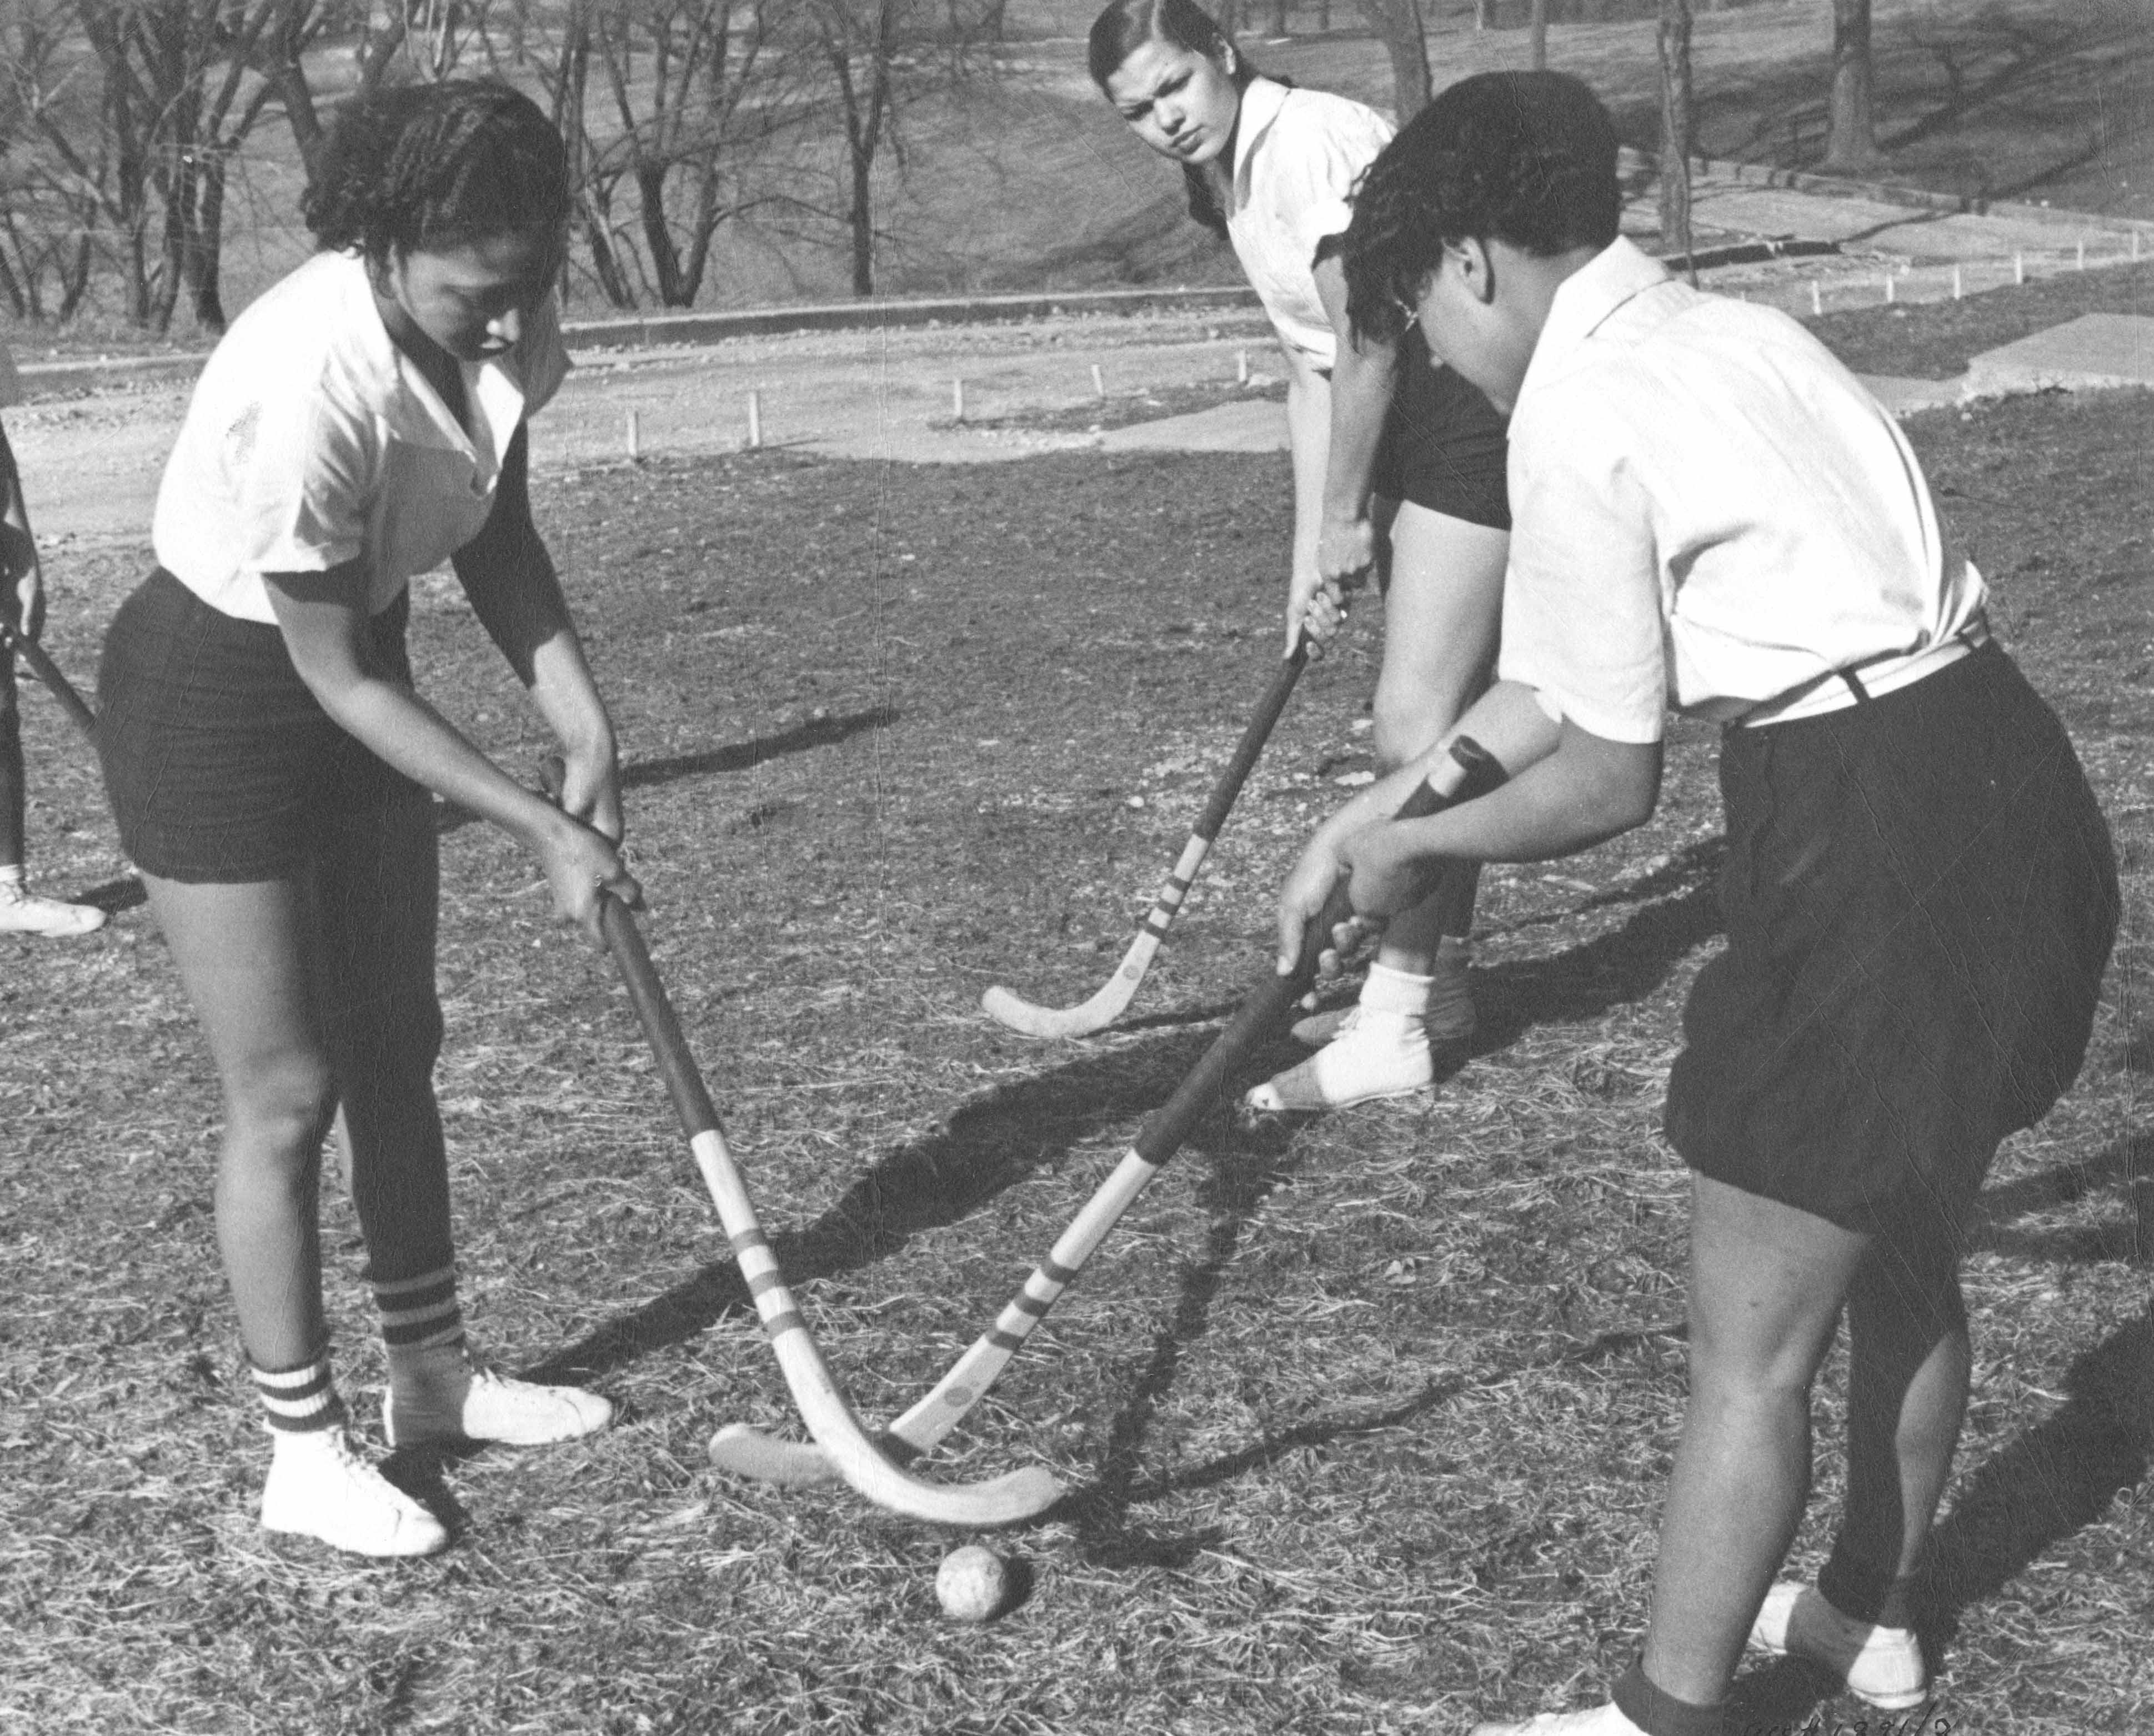 Ladies playing field hockey at Lincoln University, c. 1937